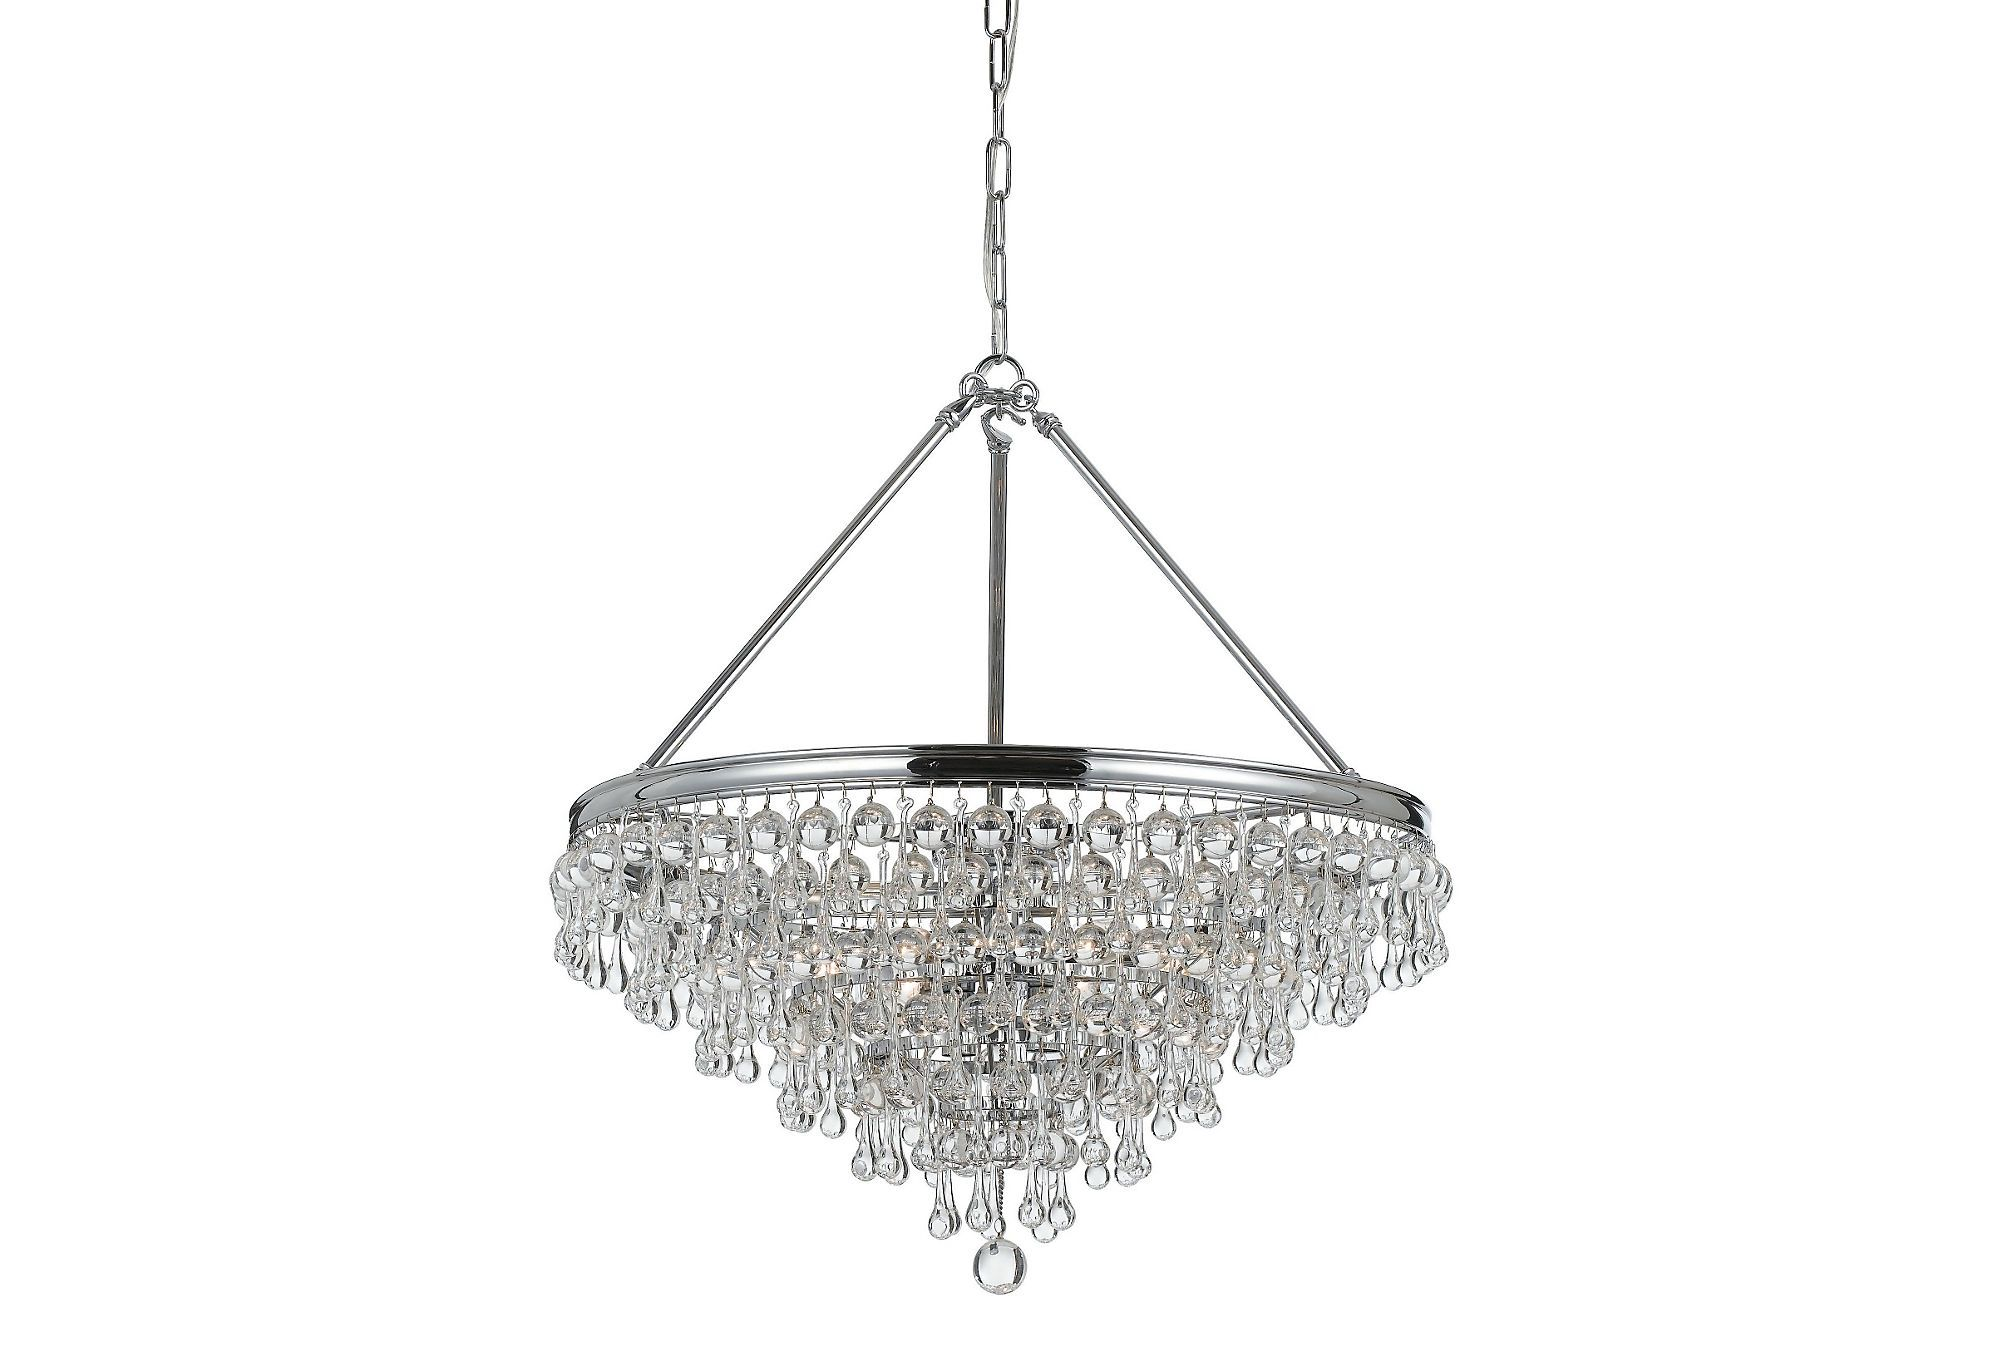 A Glam Modern Take On The Existing Foyer Chandelier One Kings